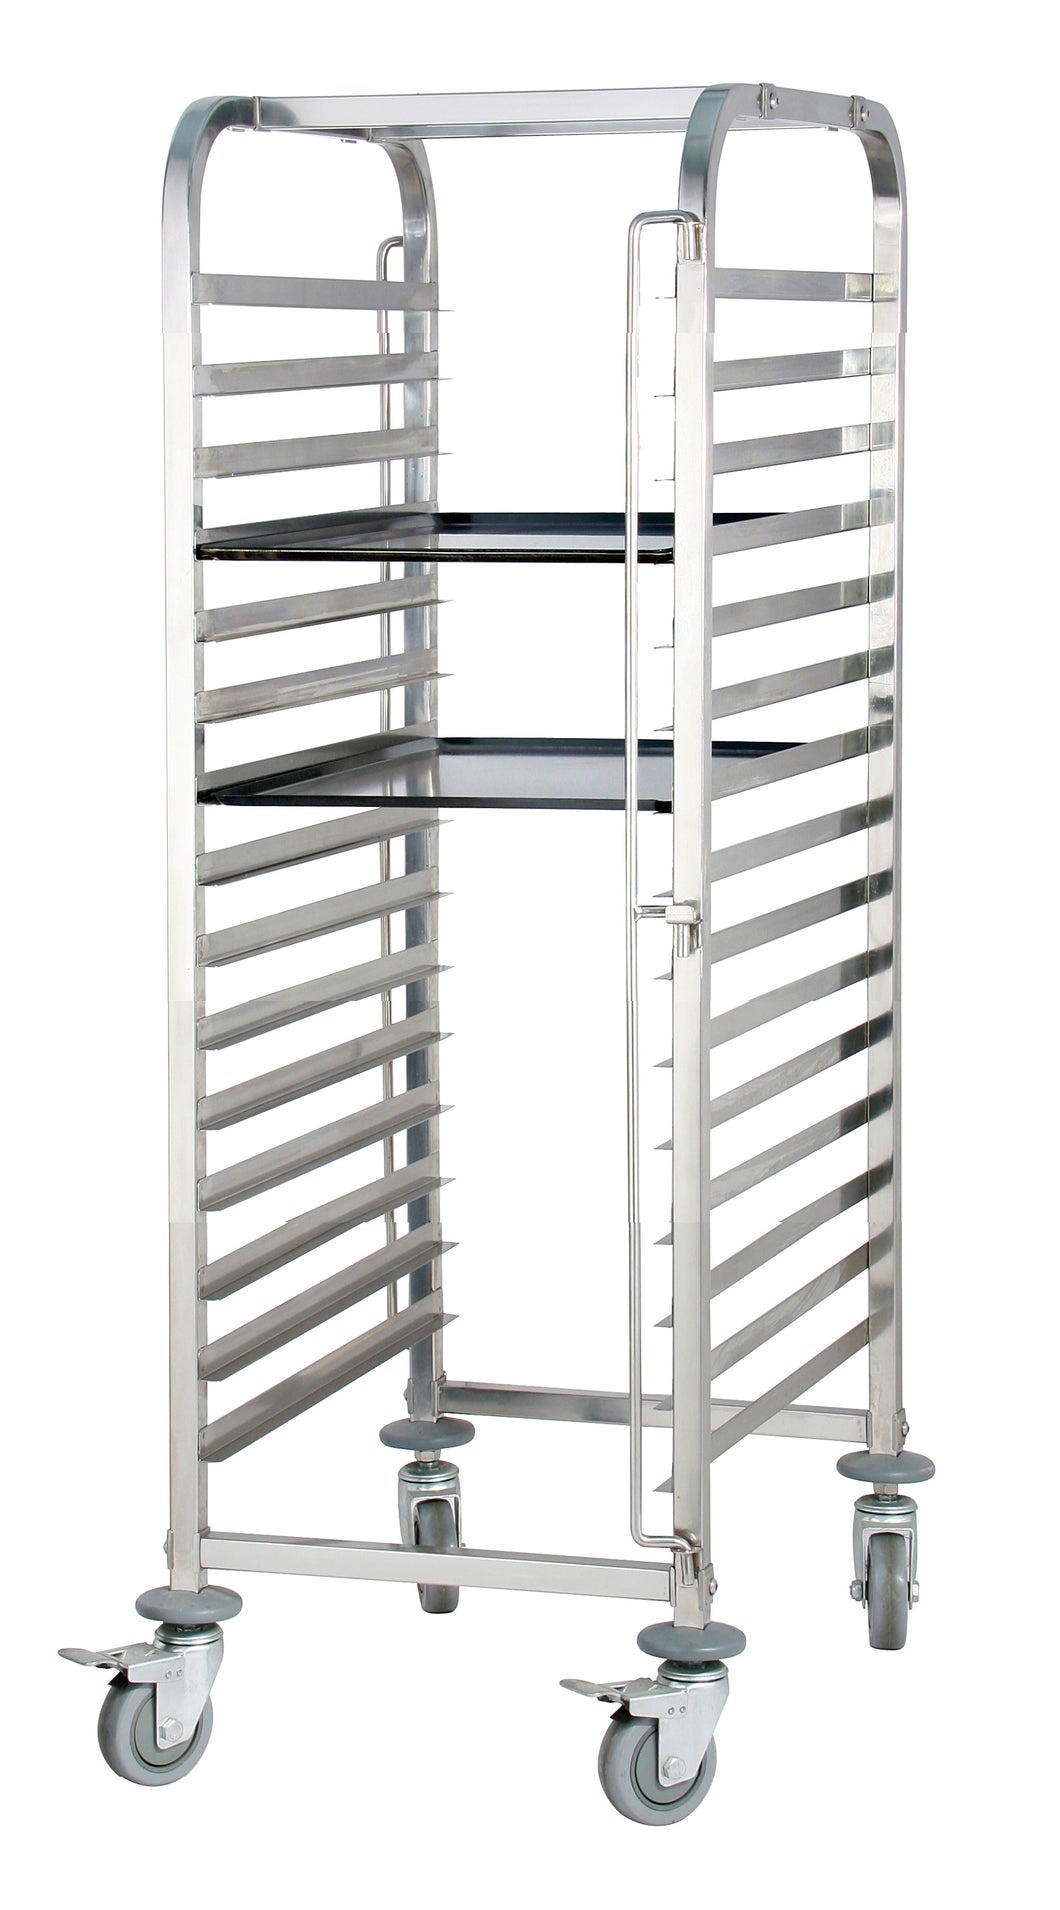 15 Level Bakery Racking Trolley